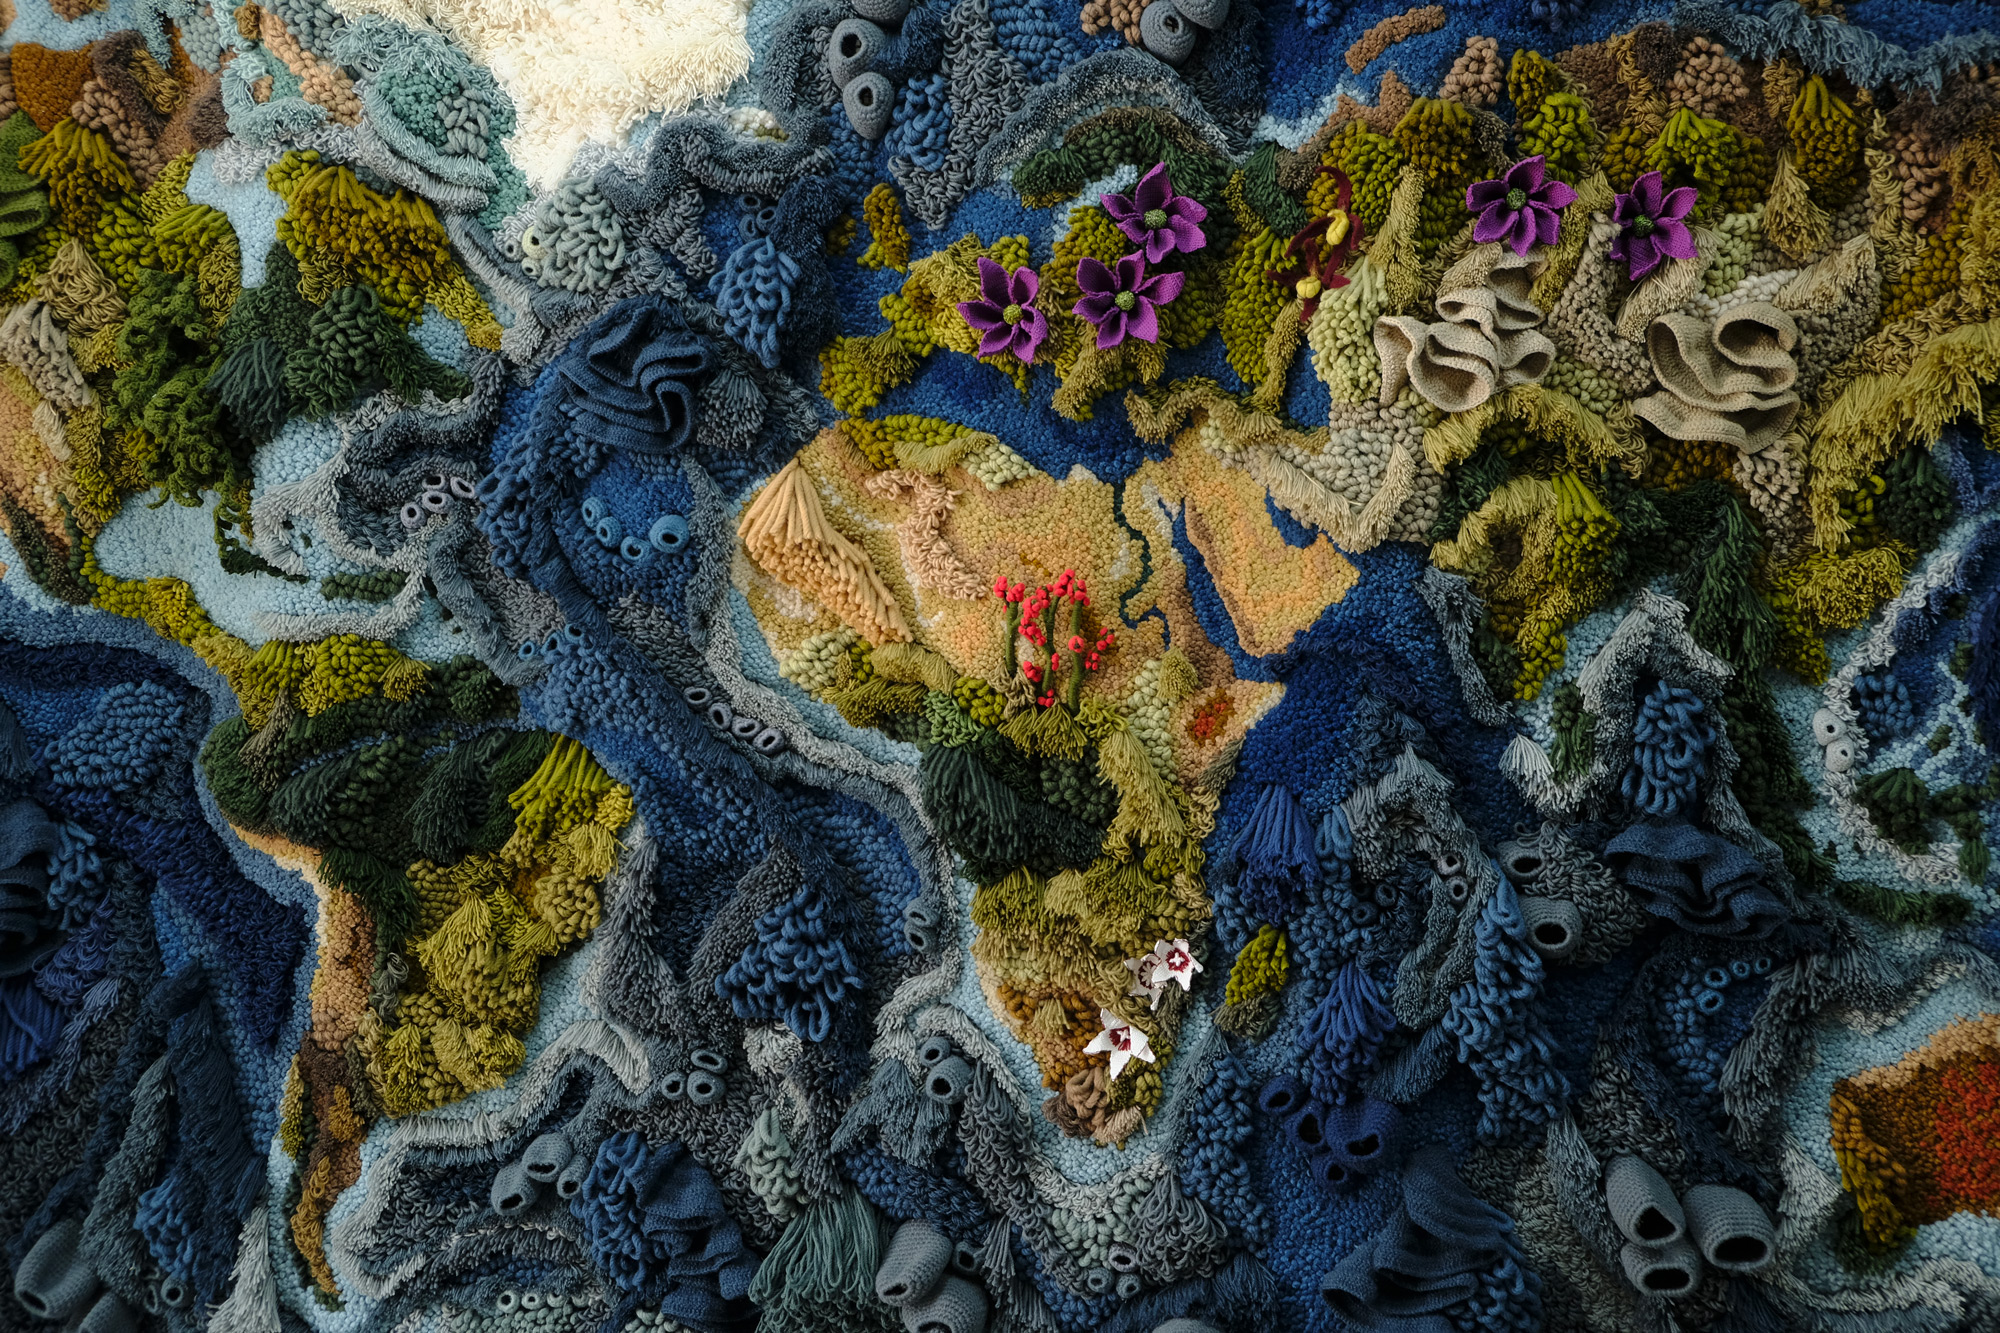 A 20 Foot-Wide Tapestry by Vanessa Barragão Recreates the World in Textural Yarn | Colossal